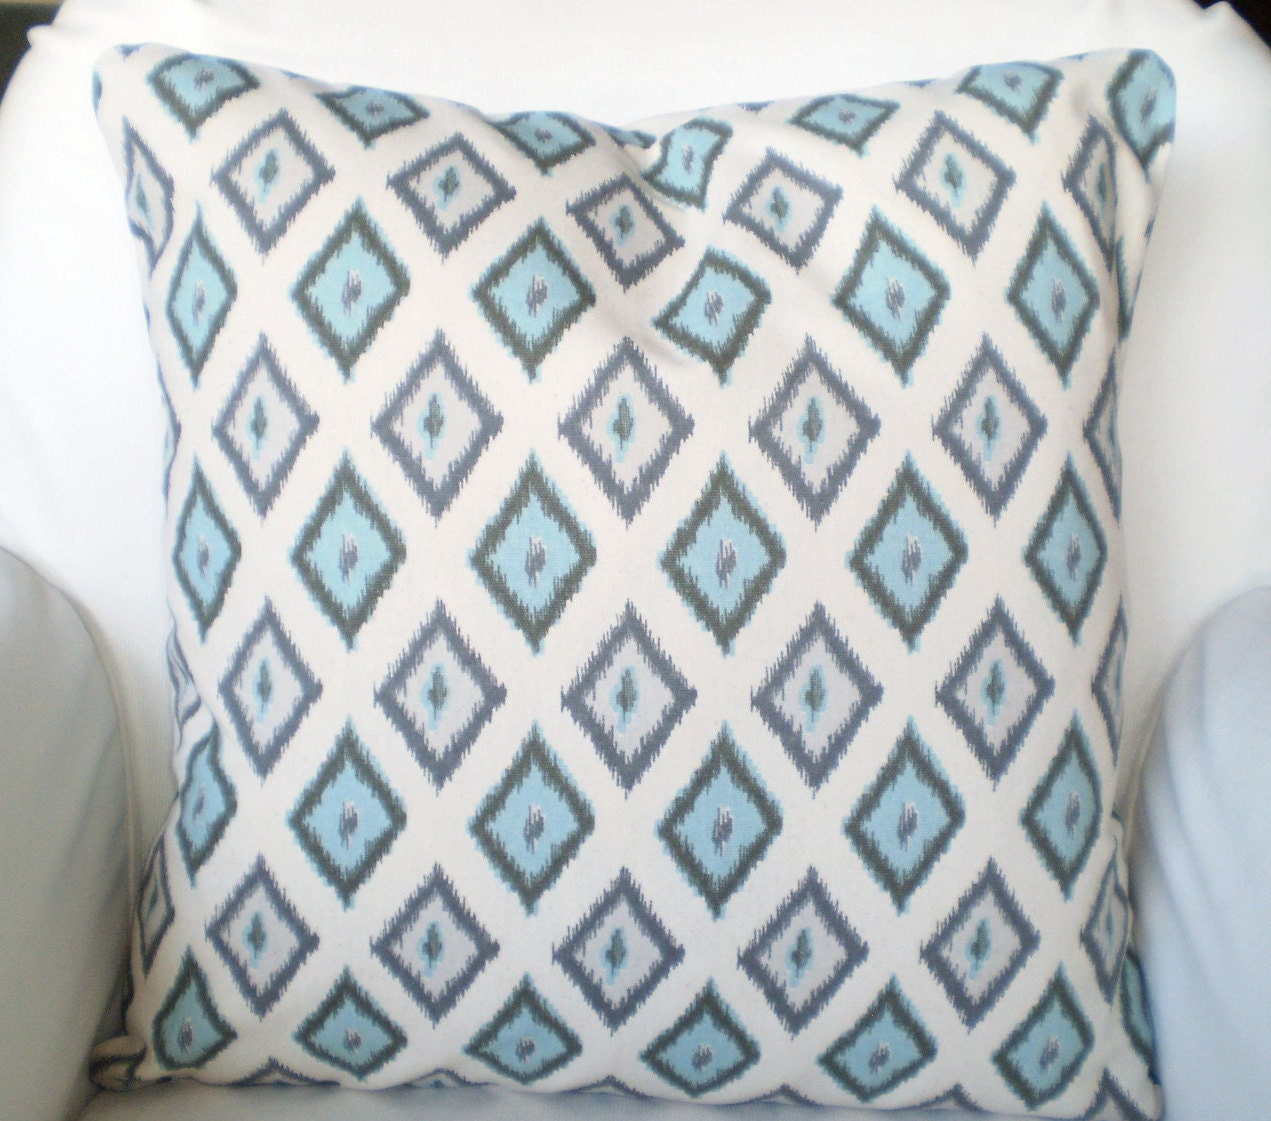 Blue Gray Cream Throw Pillow Covers By Pillowcushioncovers